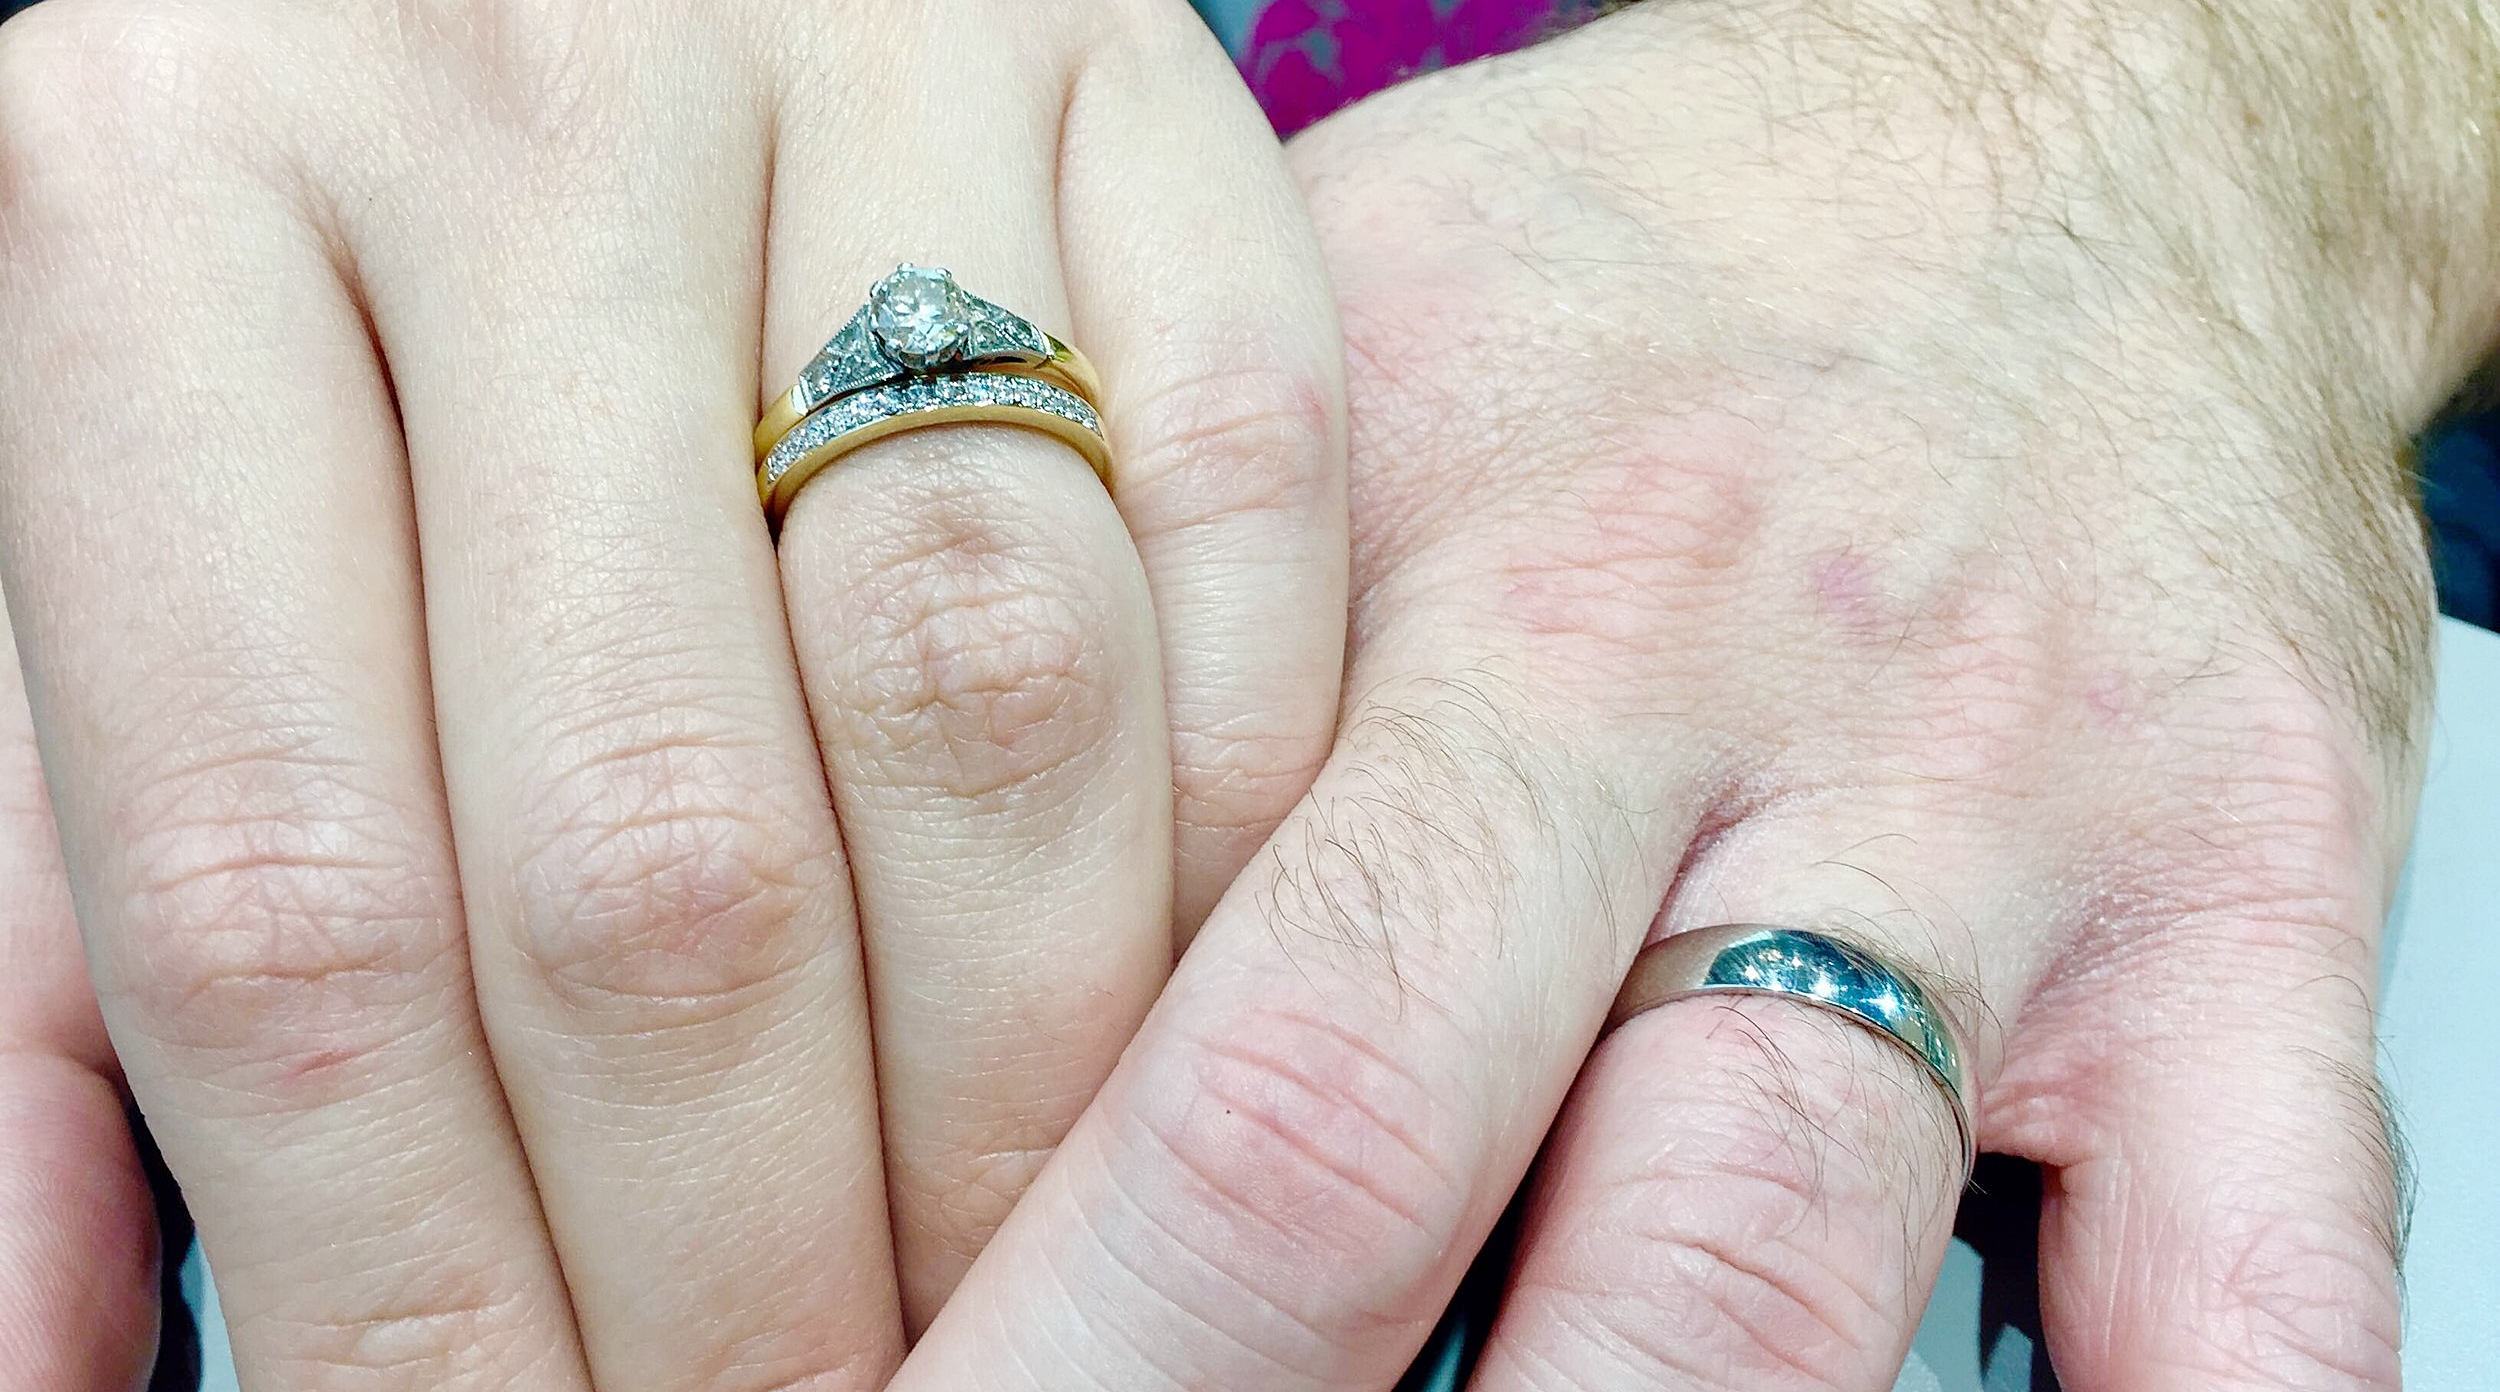 Jess and Lewis chose their beautiful wedding rings from their local Beaverbrooks store.